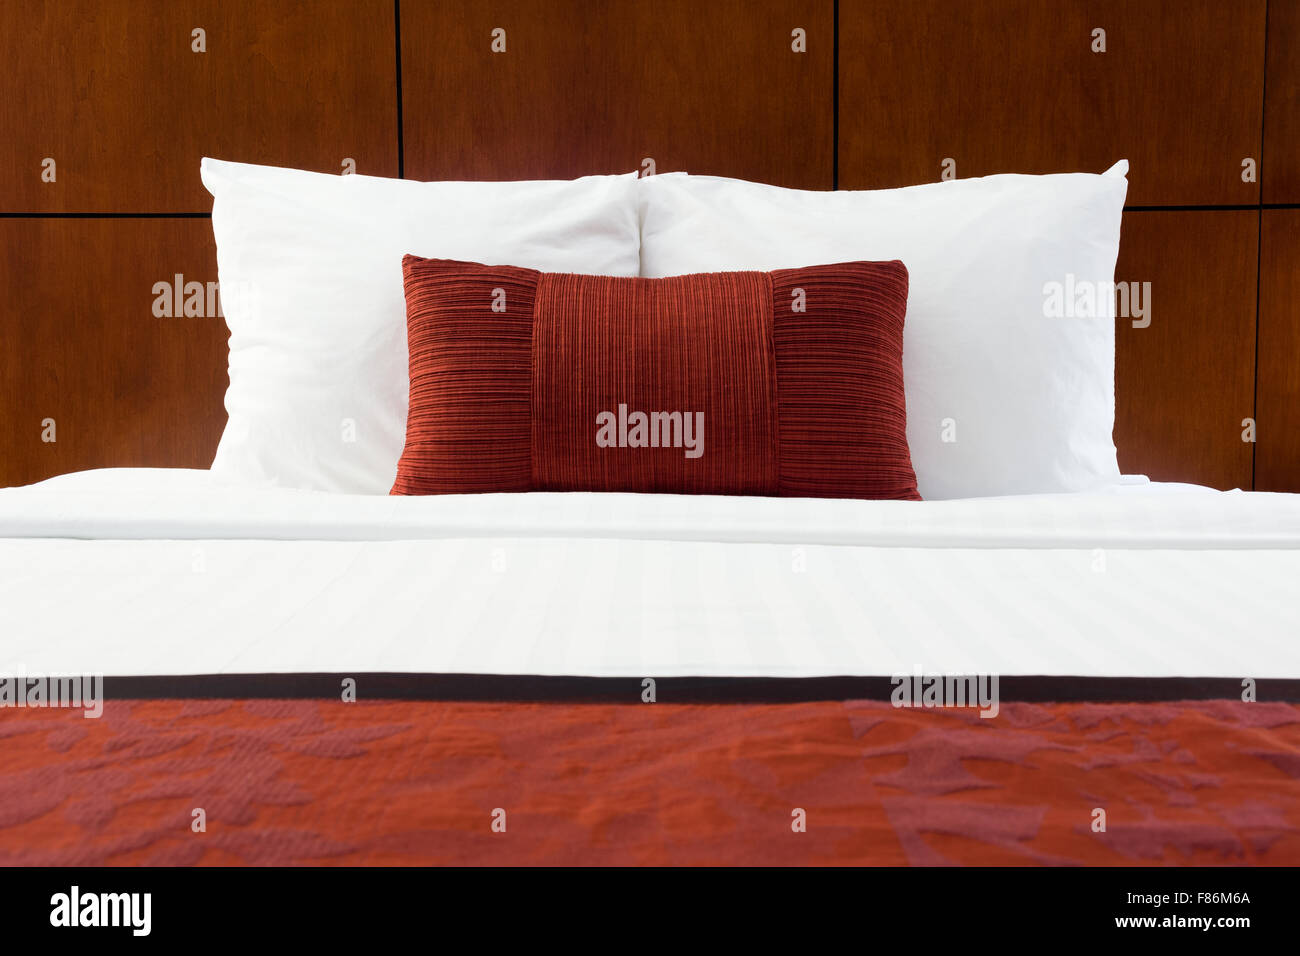 Hotel room bed, red pillows, and wood headboard at an upscale hotel - Stock Image